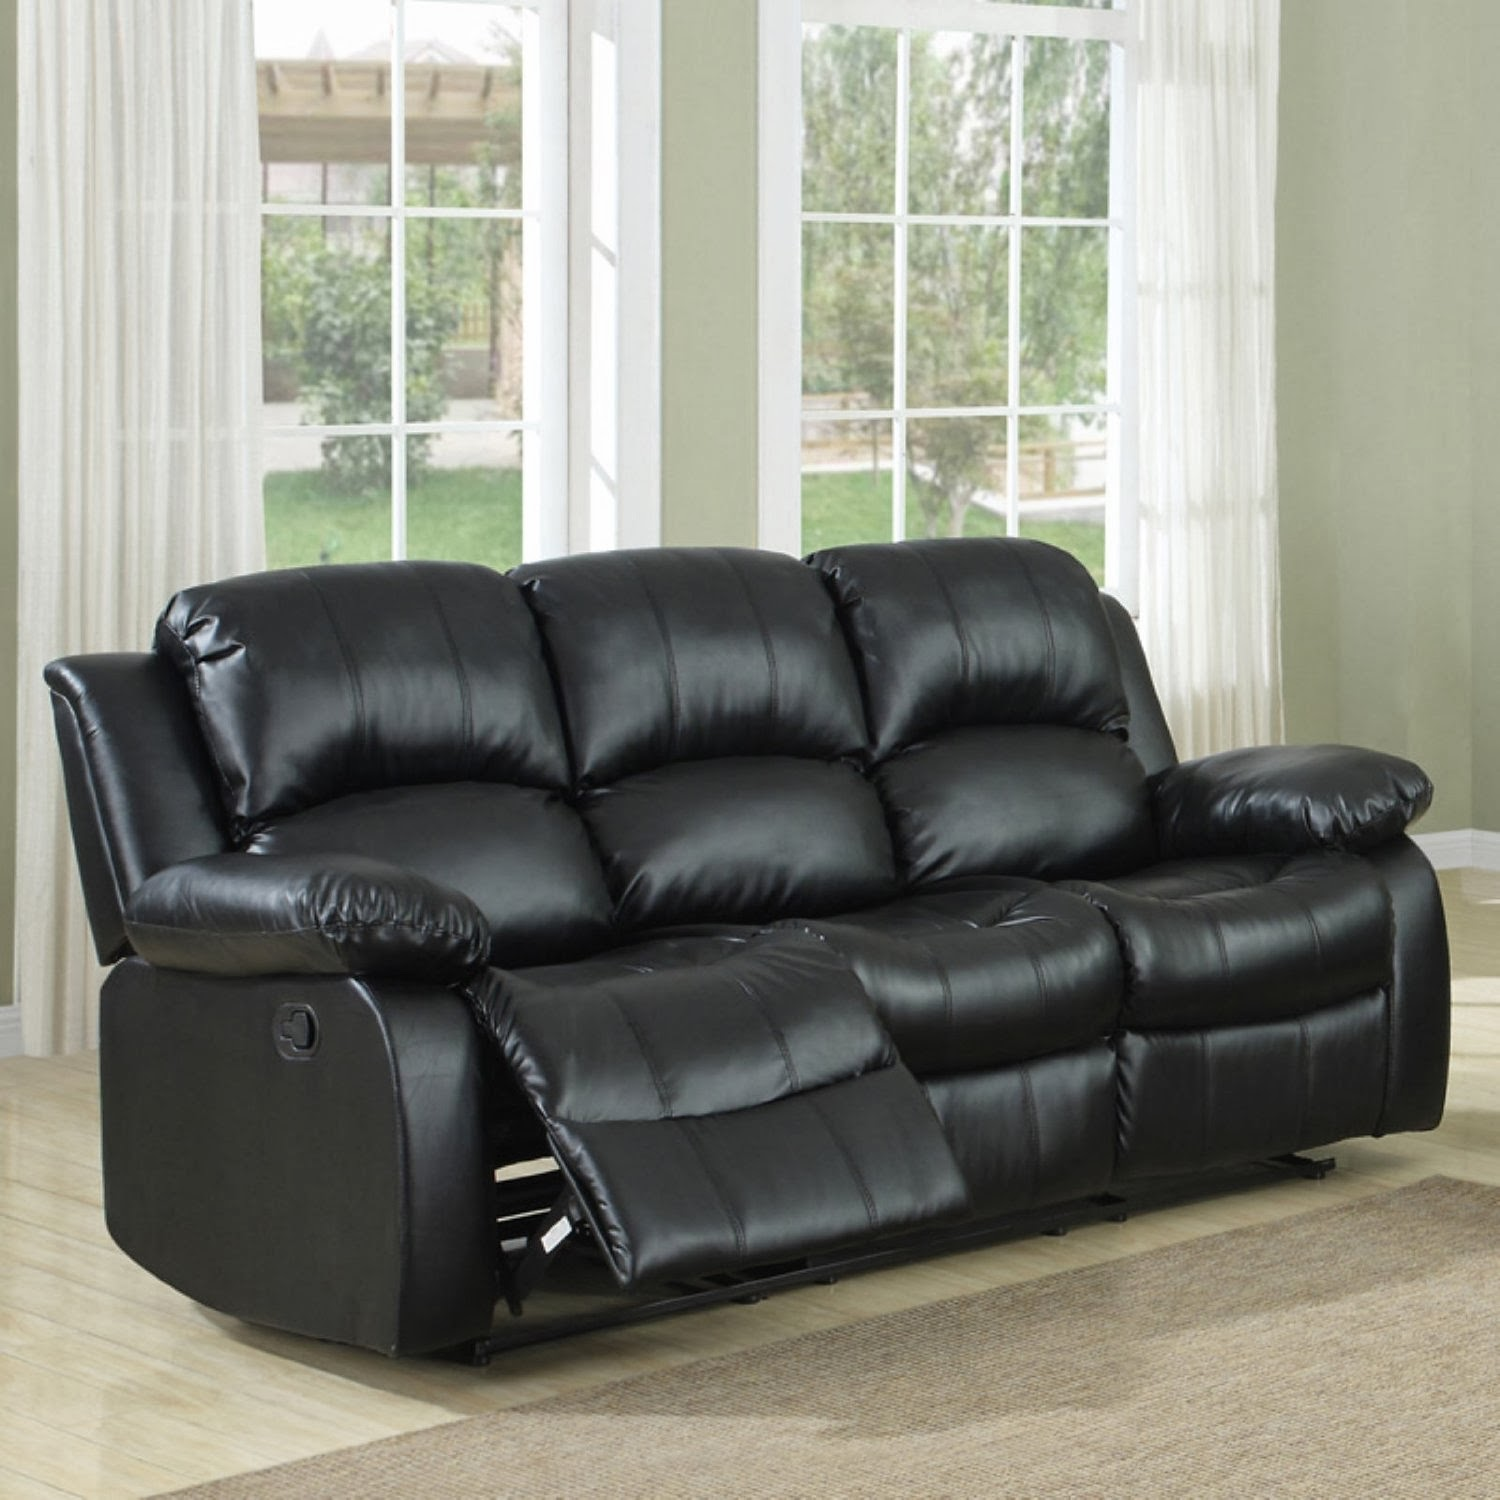 Small Sectional Sofas Reviews Small Sectional Sofa With